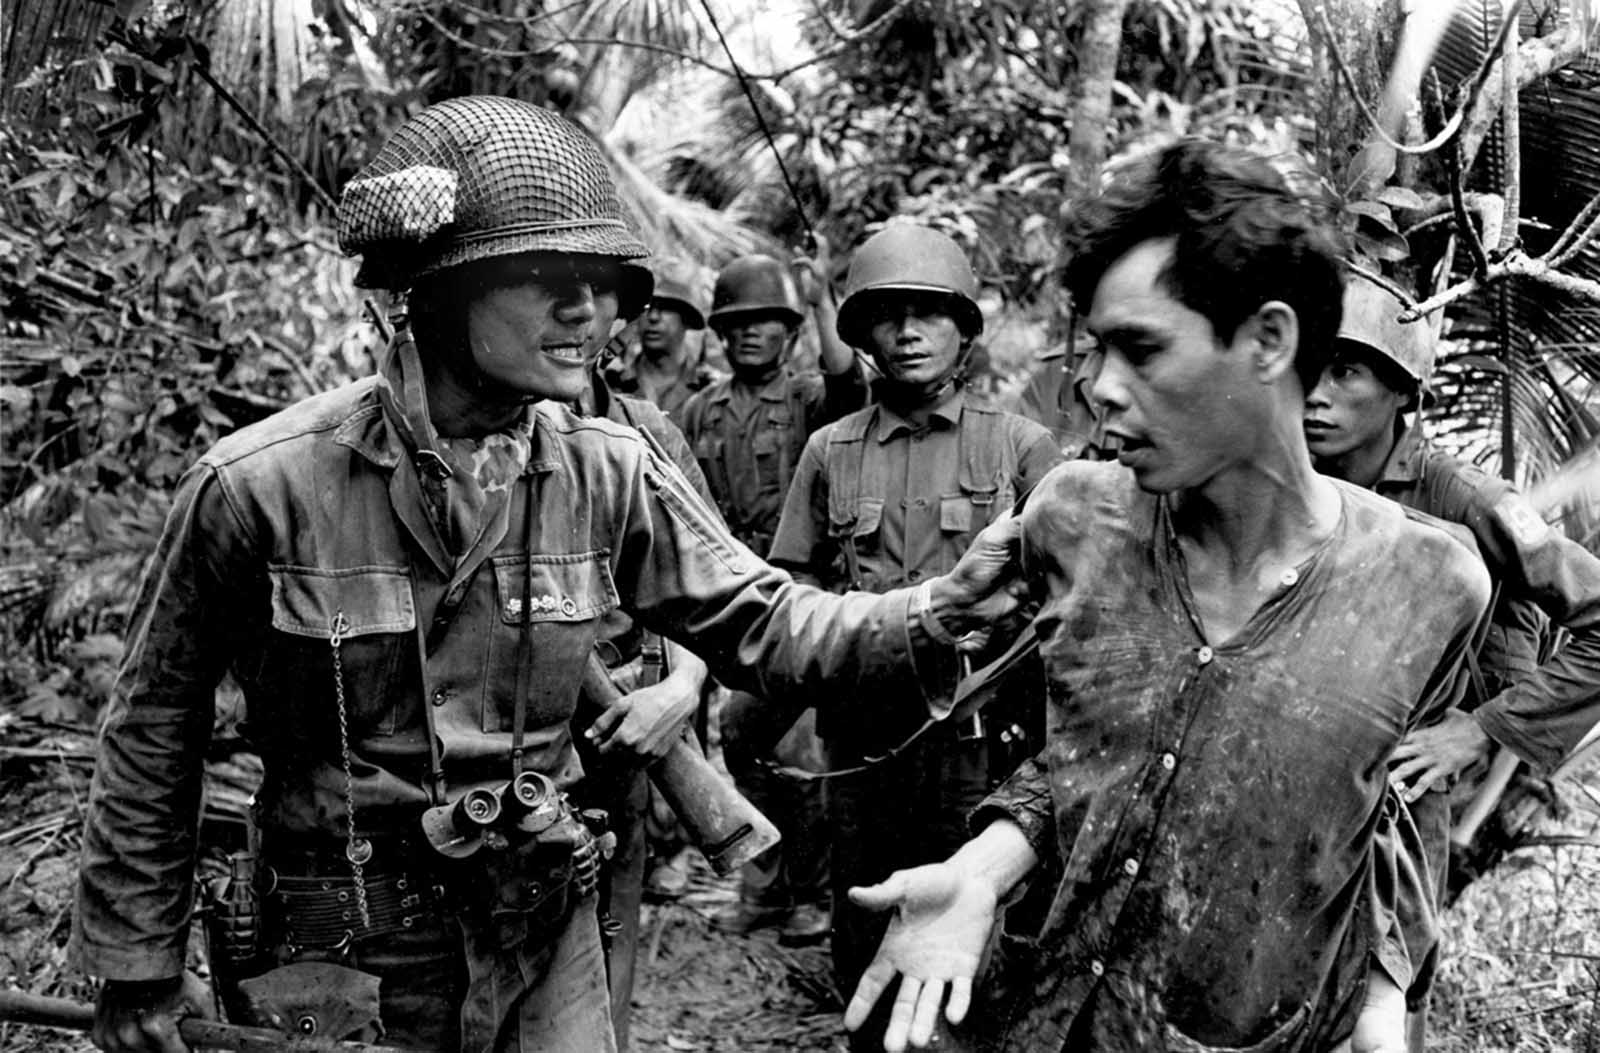 A Vietnamese battalion commander, Captain Thach Quyen, left, interrogates a captured Viet Cong suspect on Tan Dinh Island, Mekong Delta, in 1965.